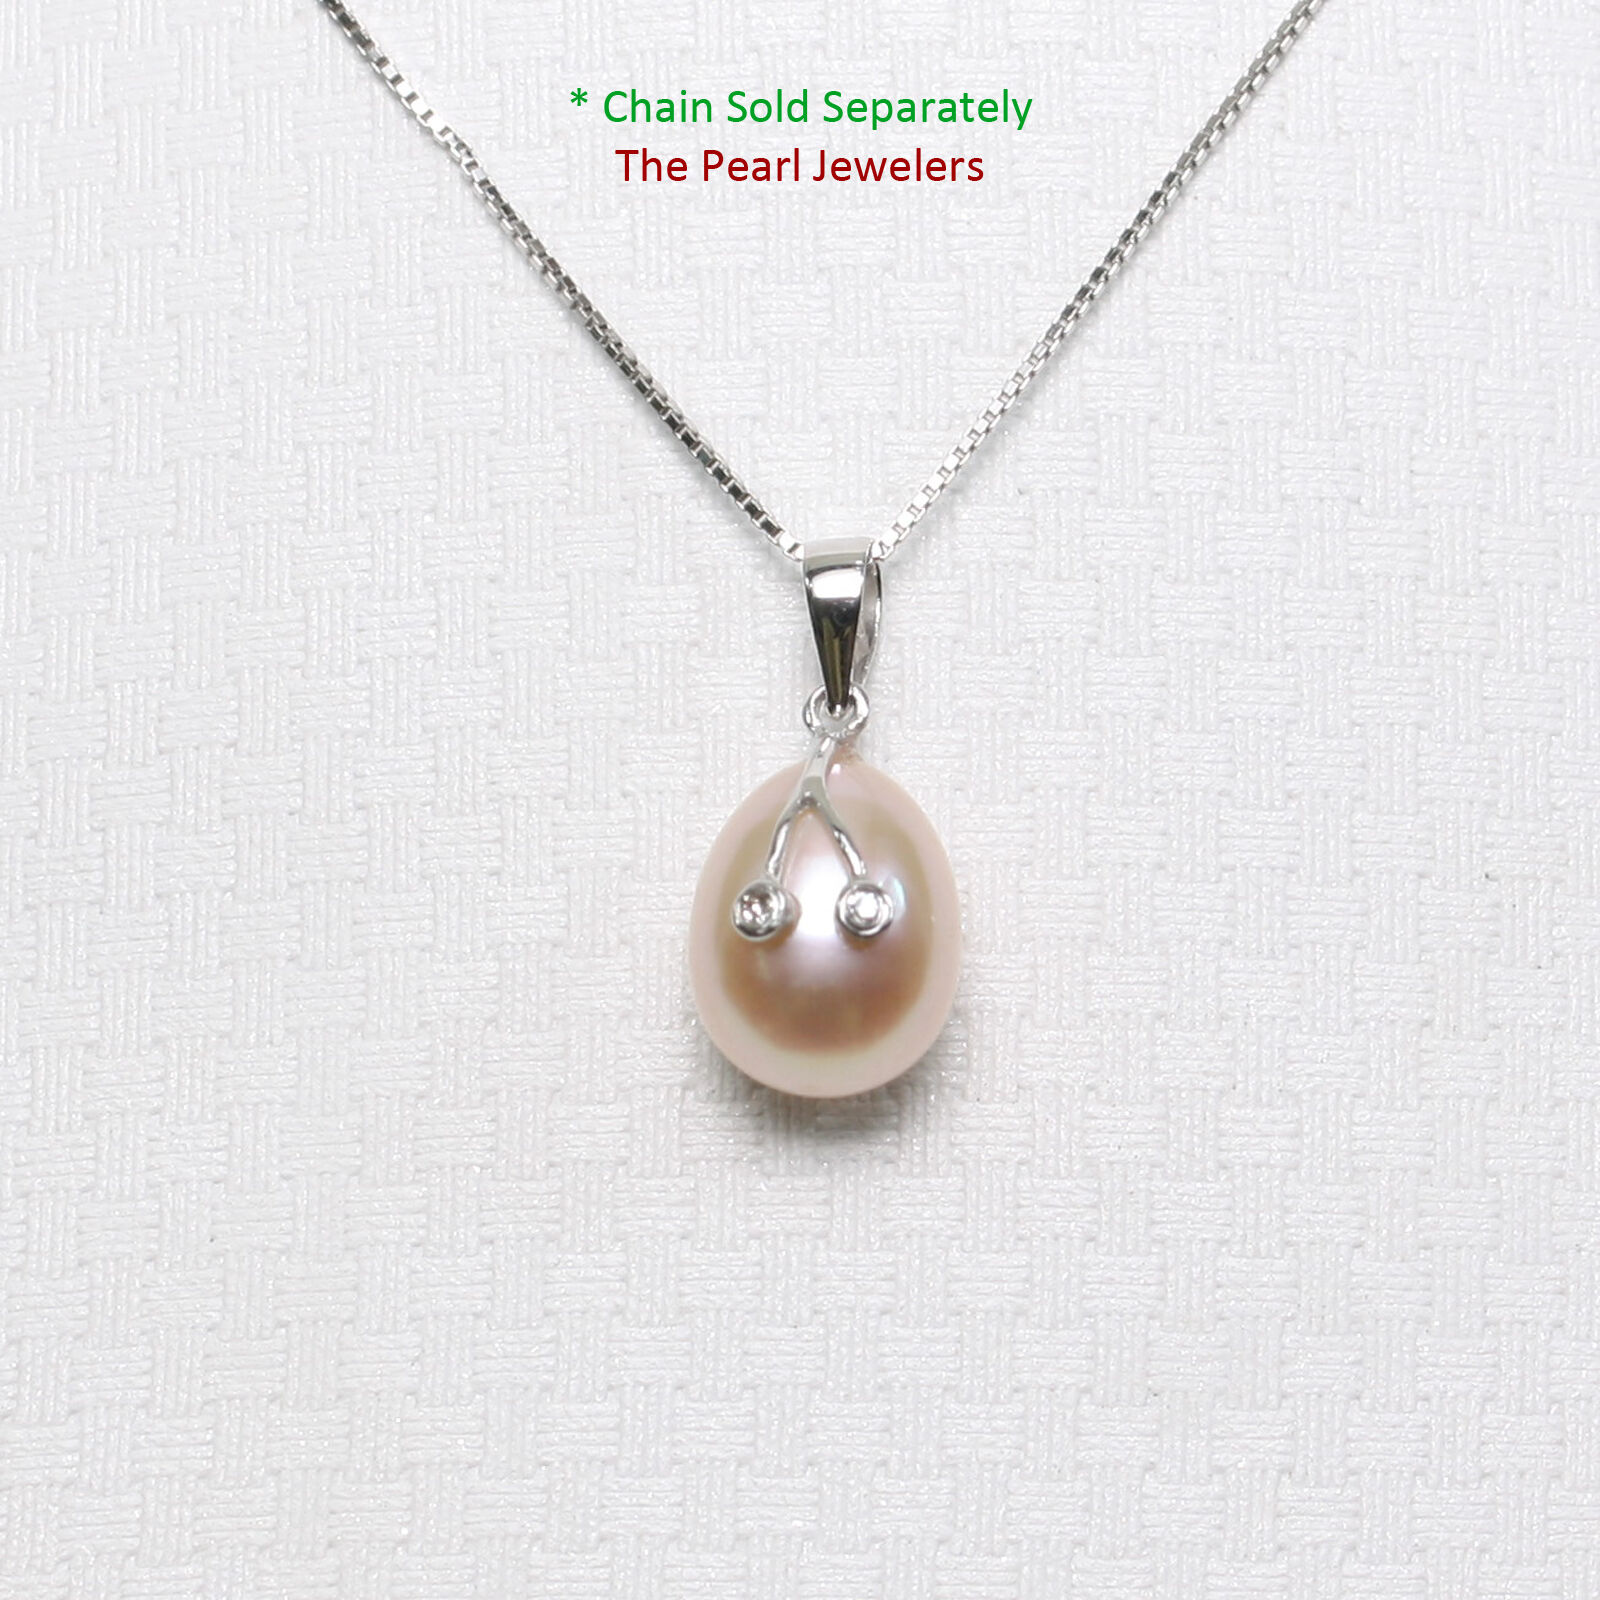 14k White gold 2 Diamond Eyes Design; AAA 7.5-8 mm Peach Cultured Pearl Pendants